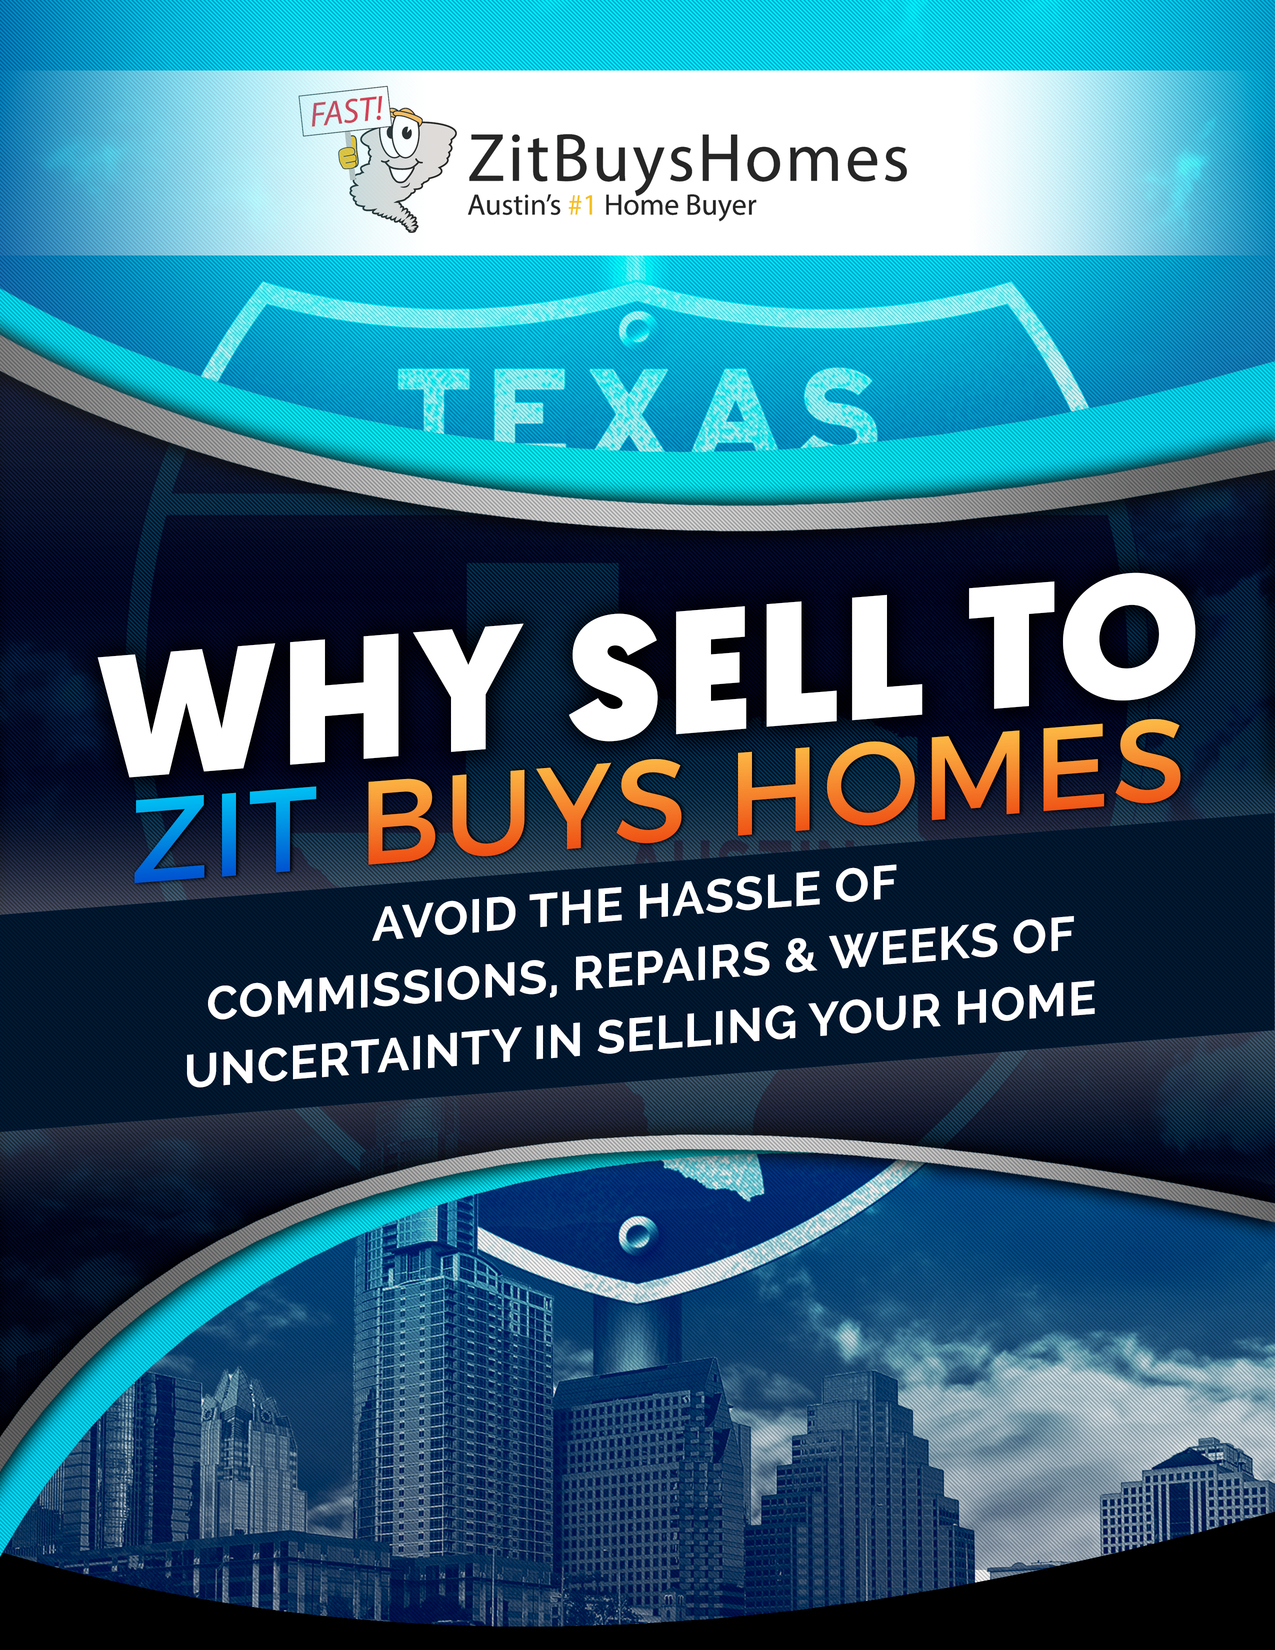 cash home sale in Texas